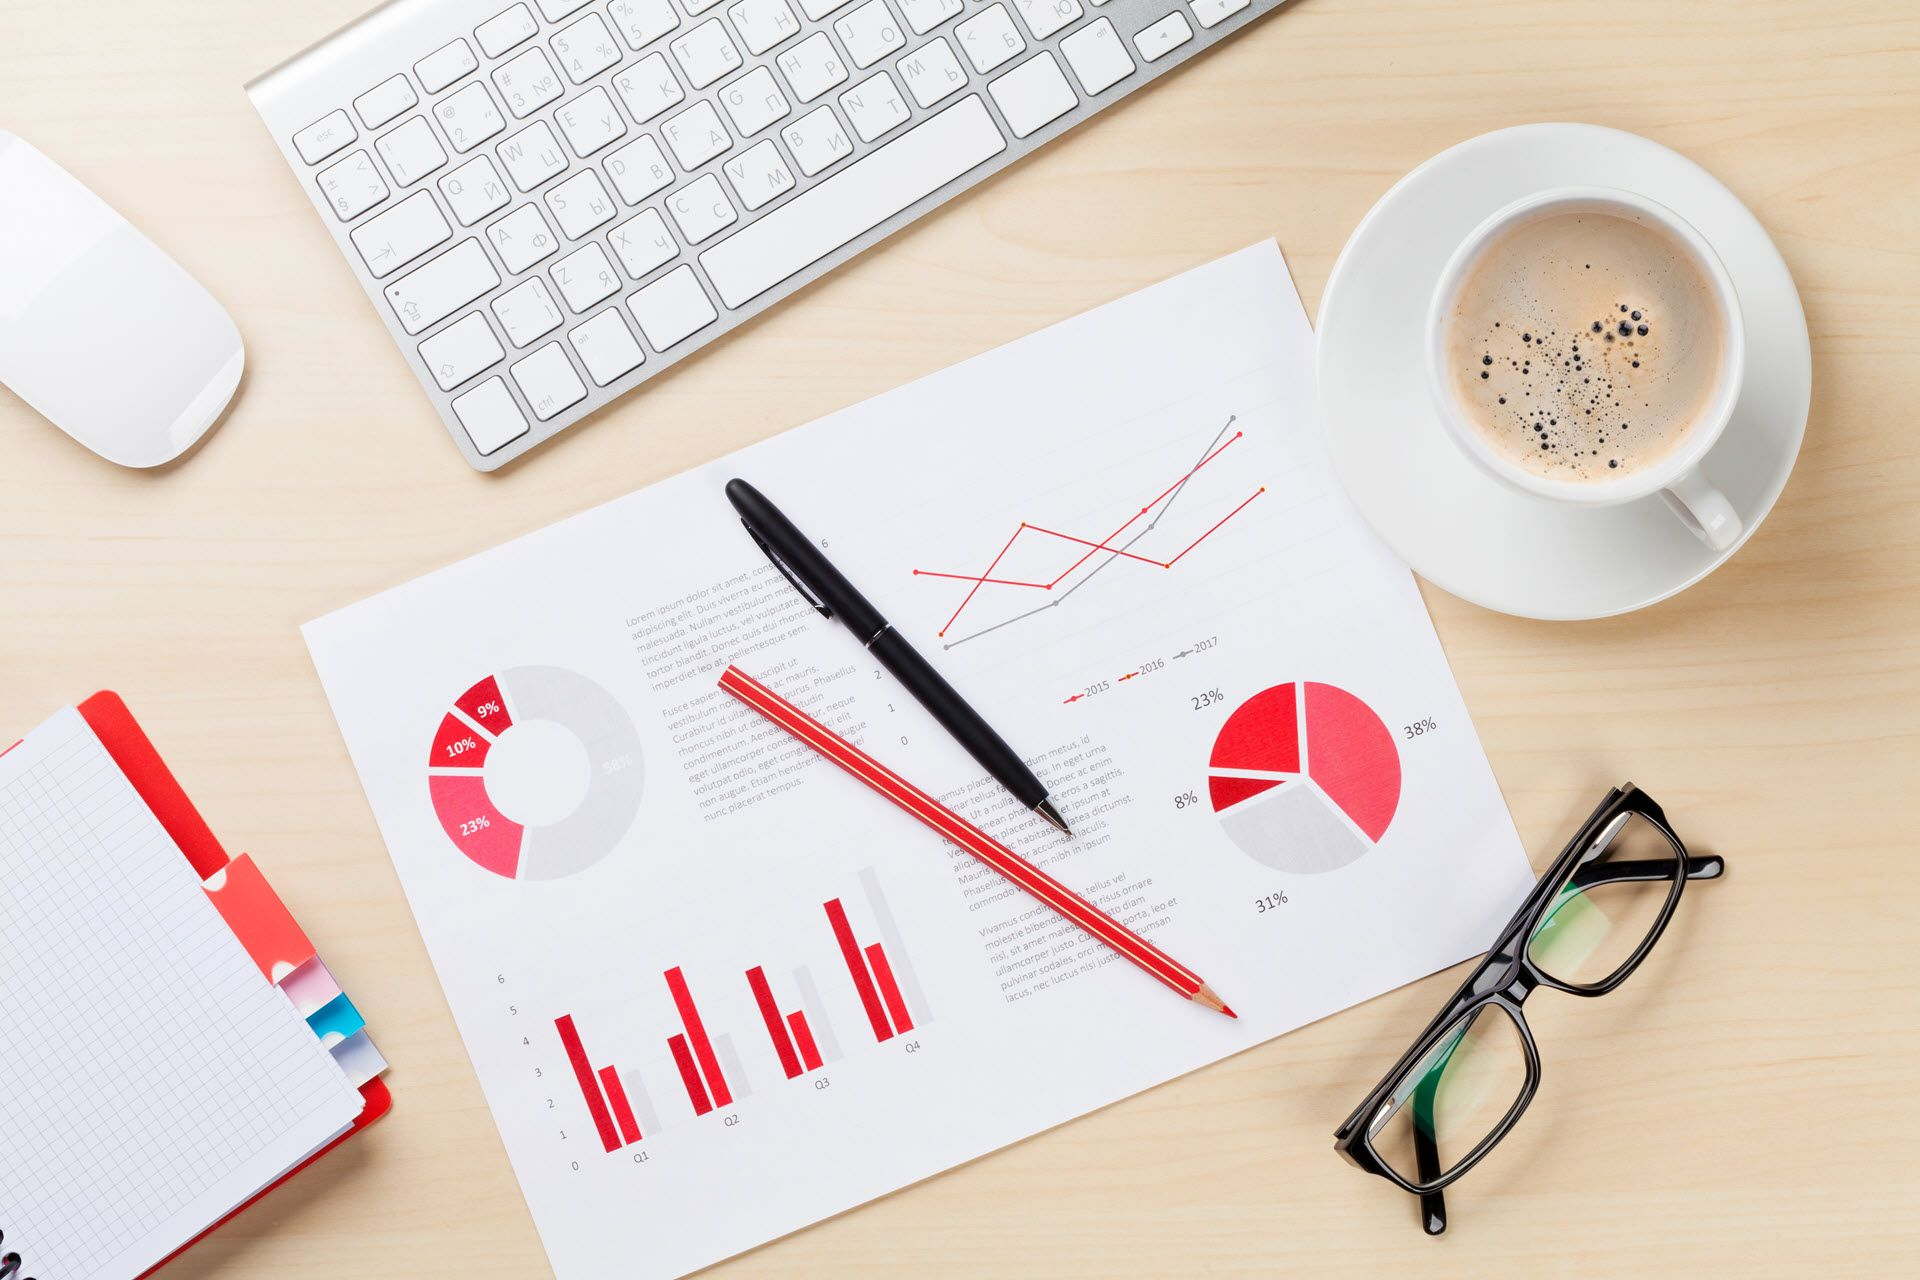 Here's Why Brand Tracking Should Be A Top Priority In 2019